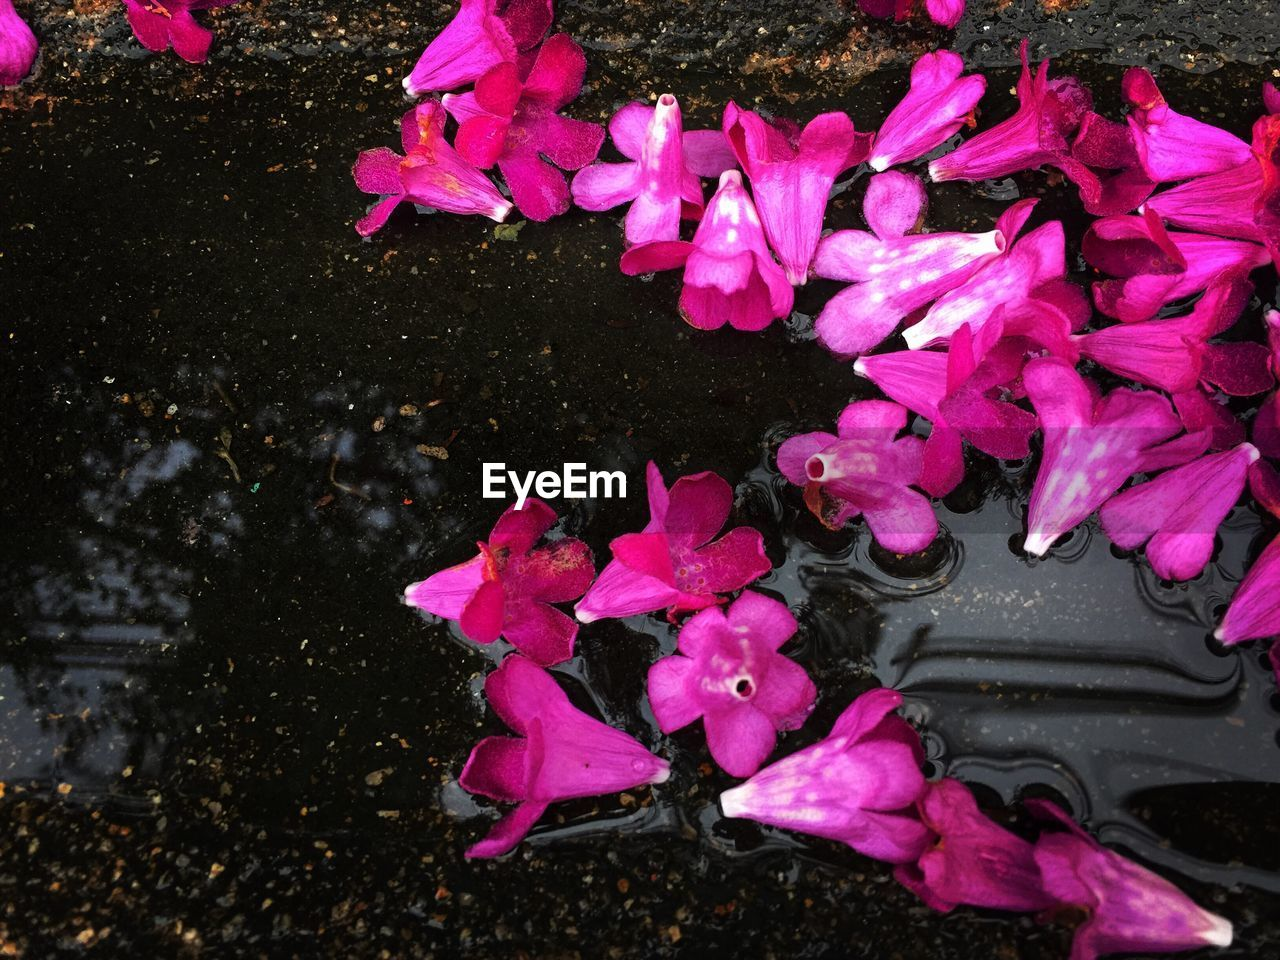 HIGH ANGLE VIEW OF PINK FLOWERS IN WATER